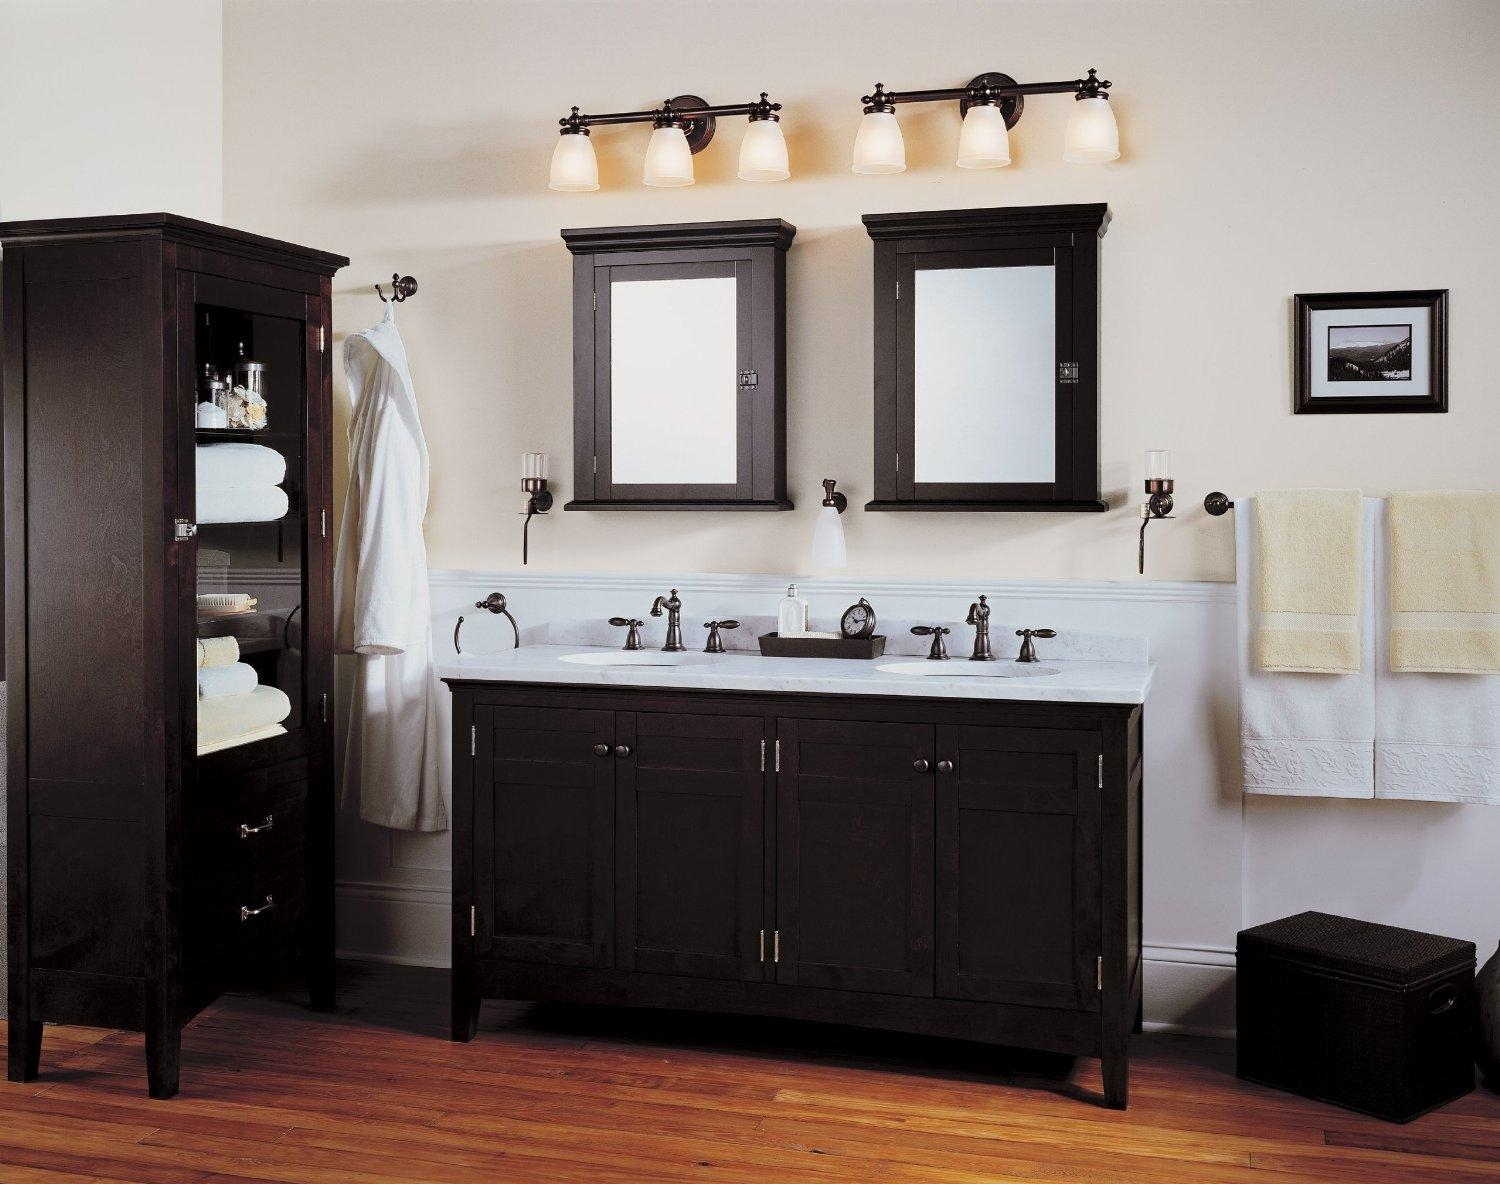 Bathroom Cabinets : Bathroom Lighting And Mirrors Bathroom Lights Pertaining To Bathroom Lighting And Mirrors (Image 4 of 20)